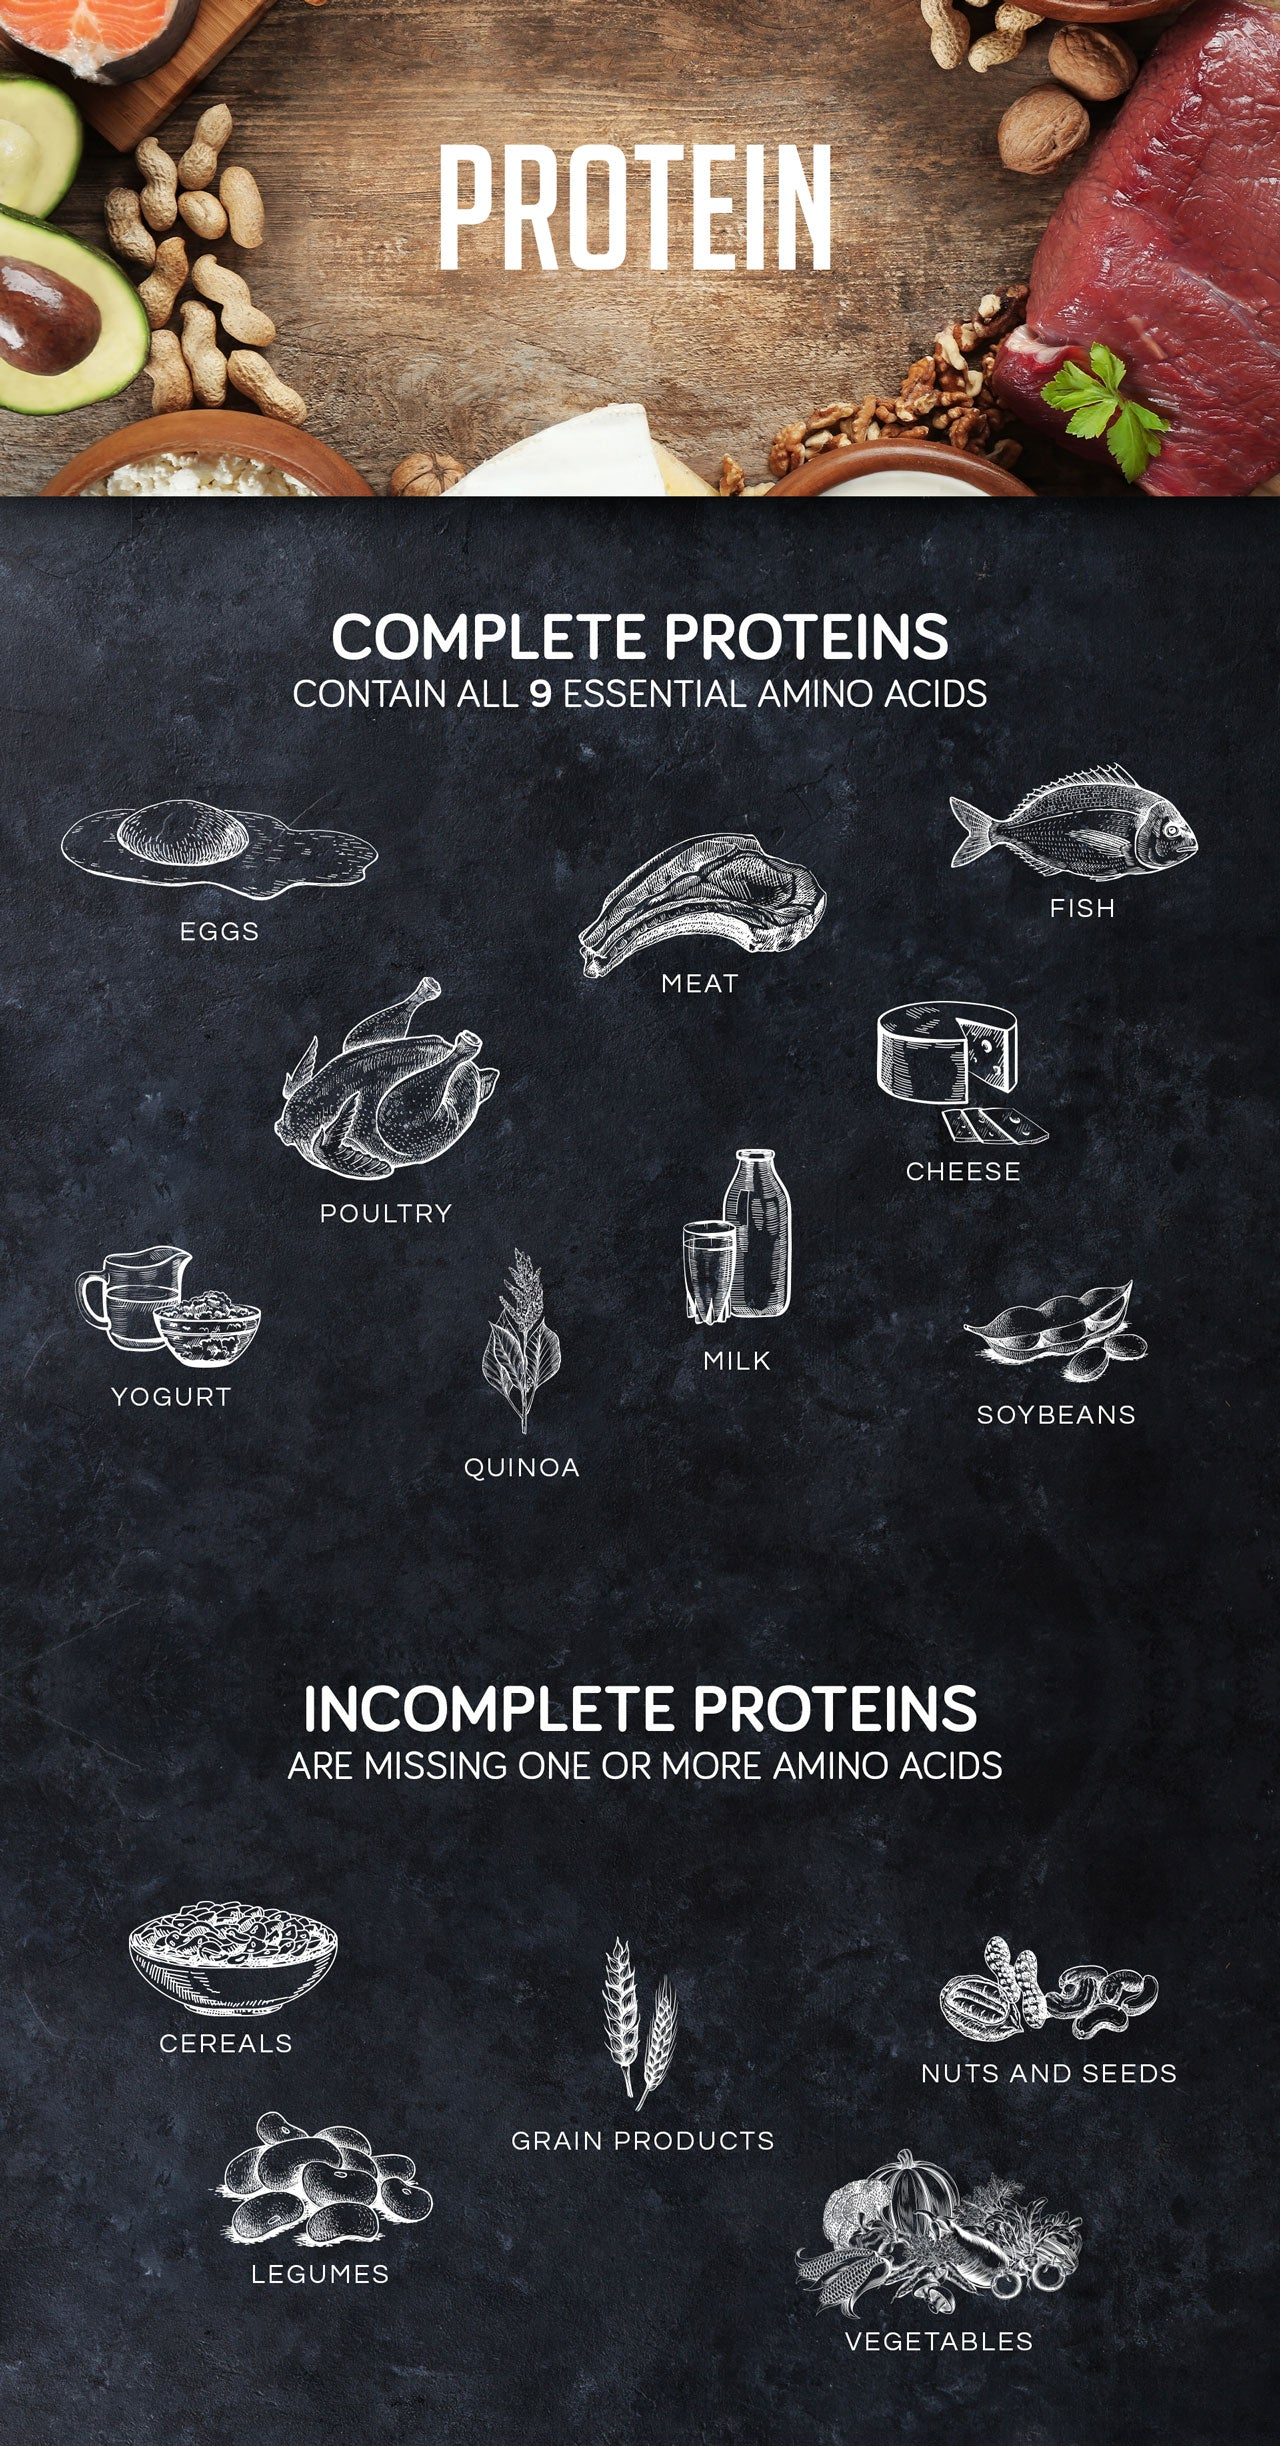 Complete and incomplete protein